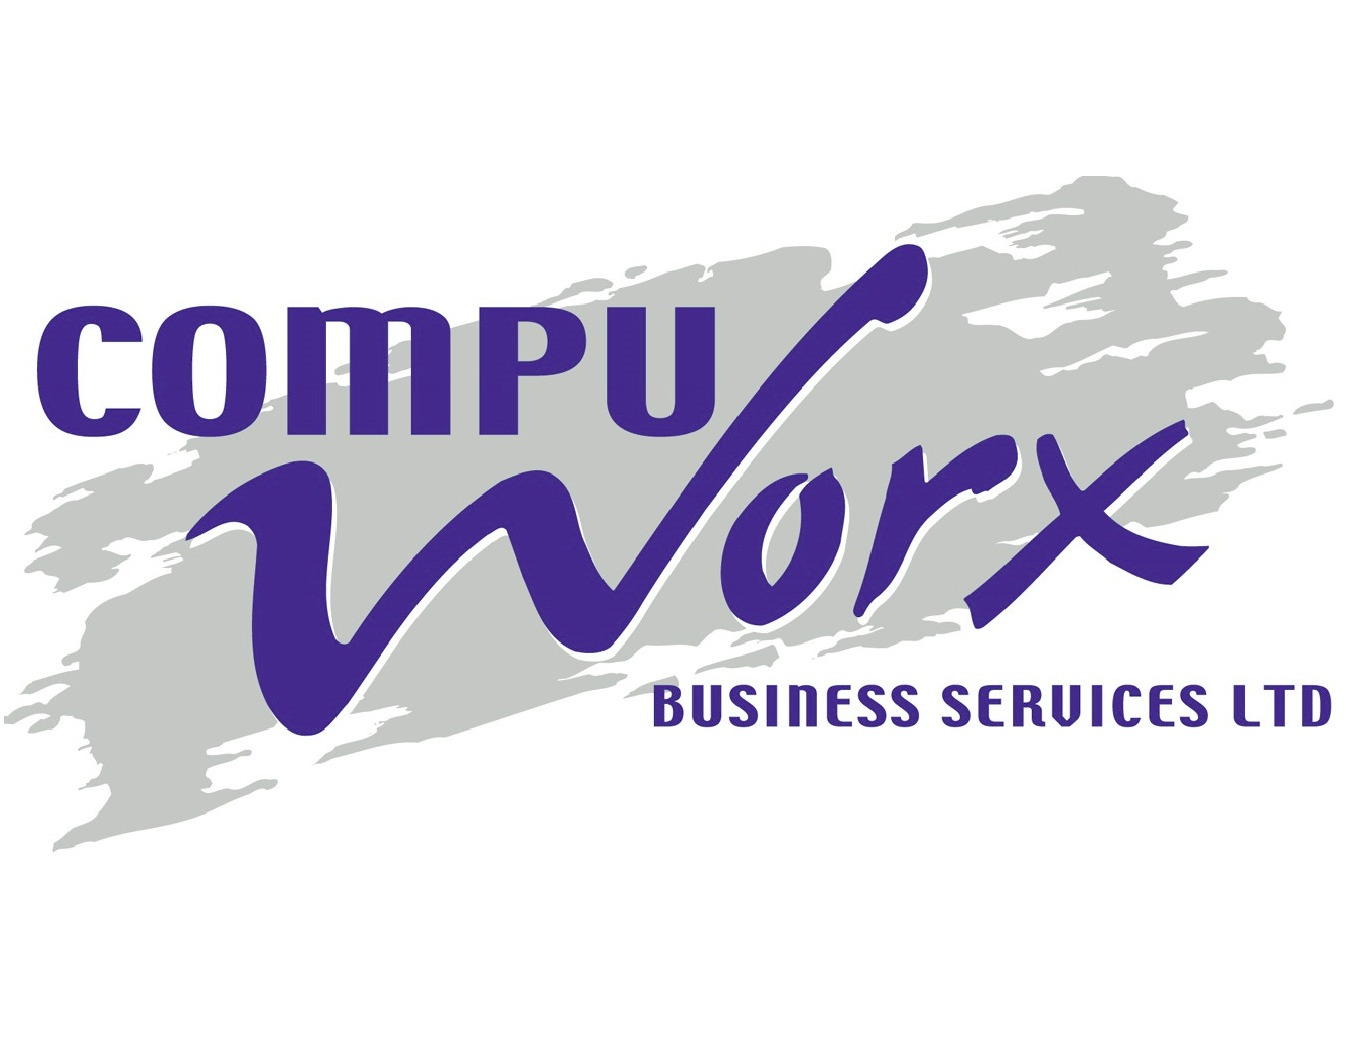 CompuWorx Business Services